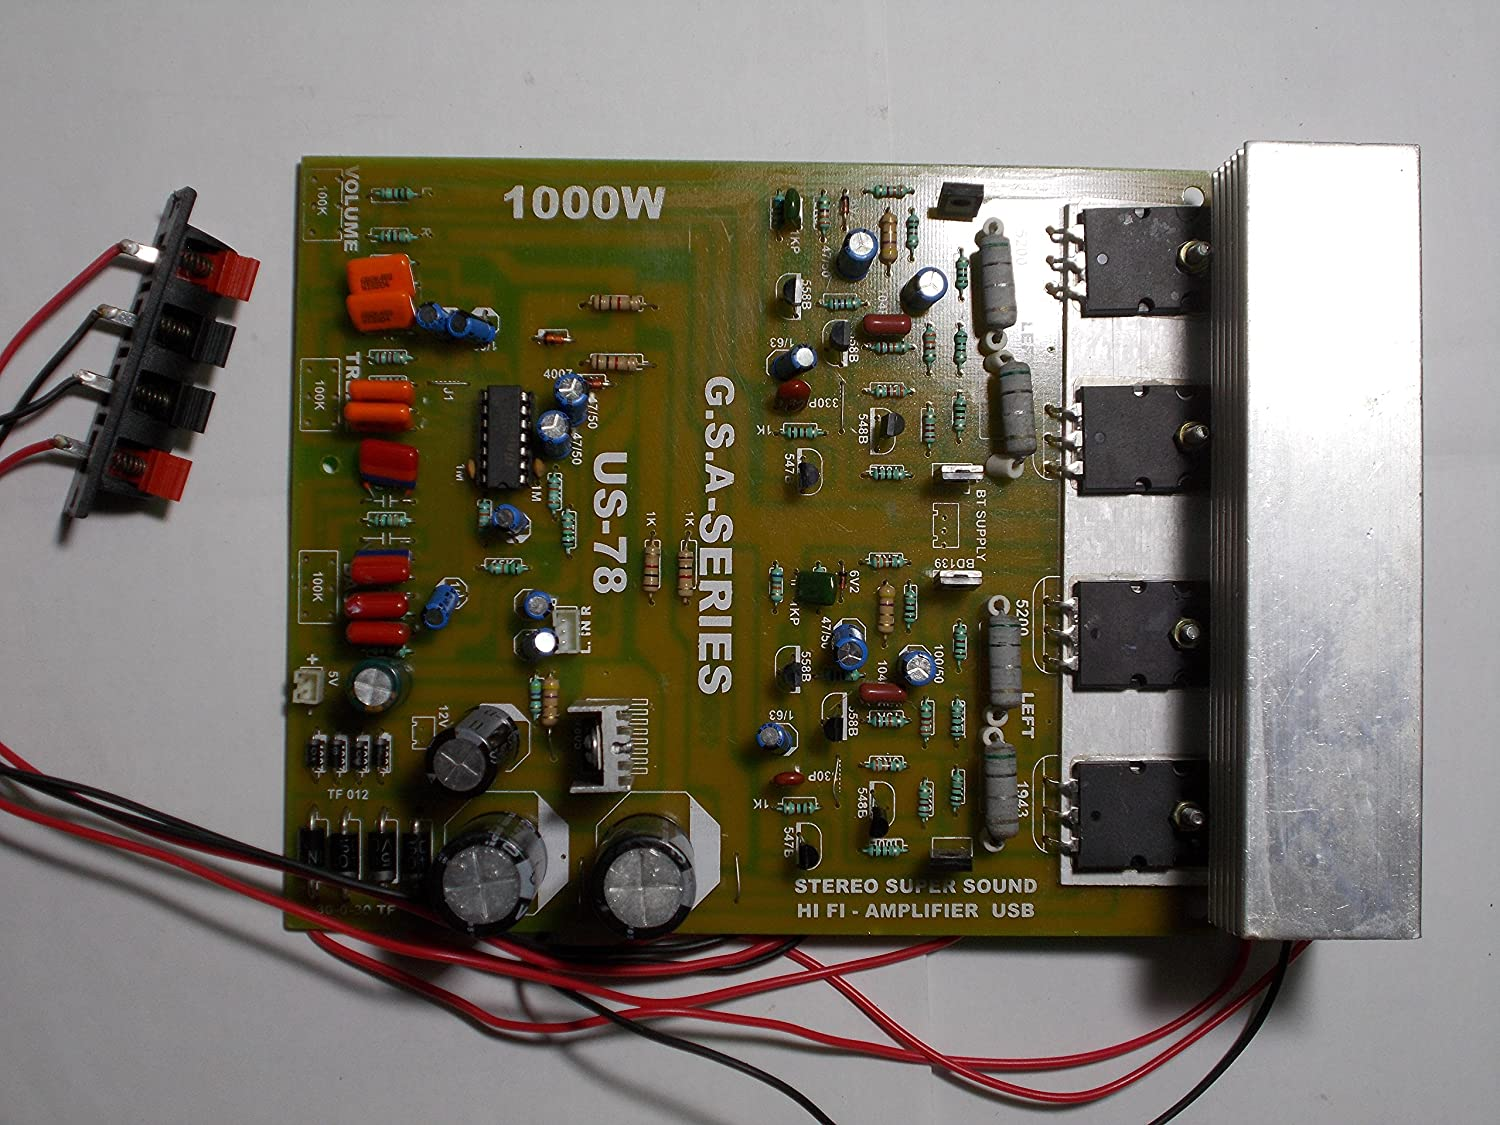 Soumik Electricals 1000 Watt Amplifier Board Power Player Circuit Rev C Schematic Diagrams Mp3 Electronics